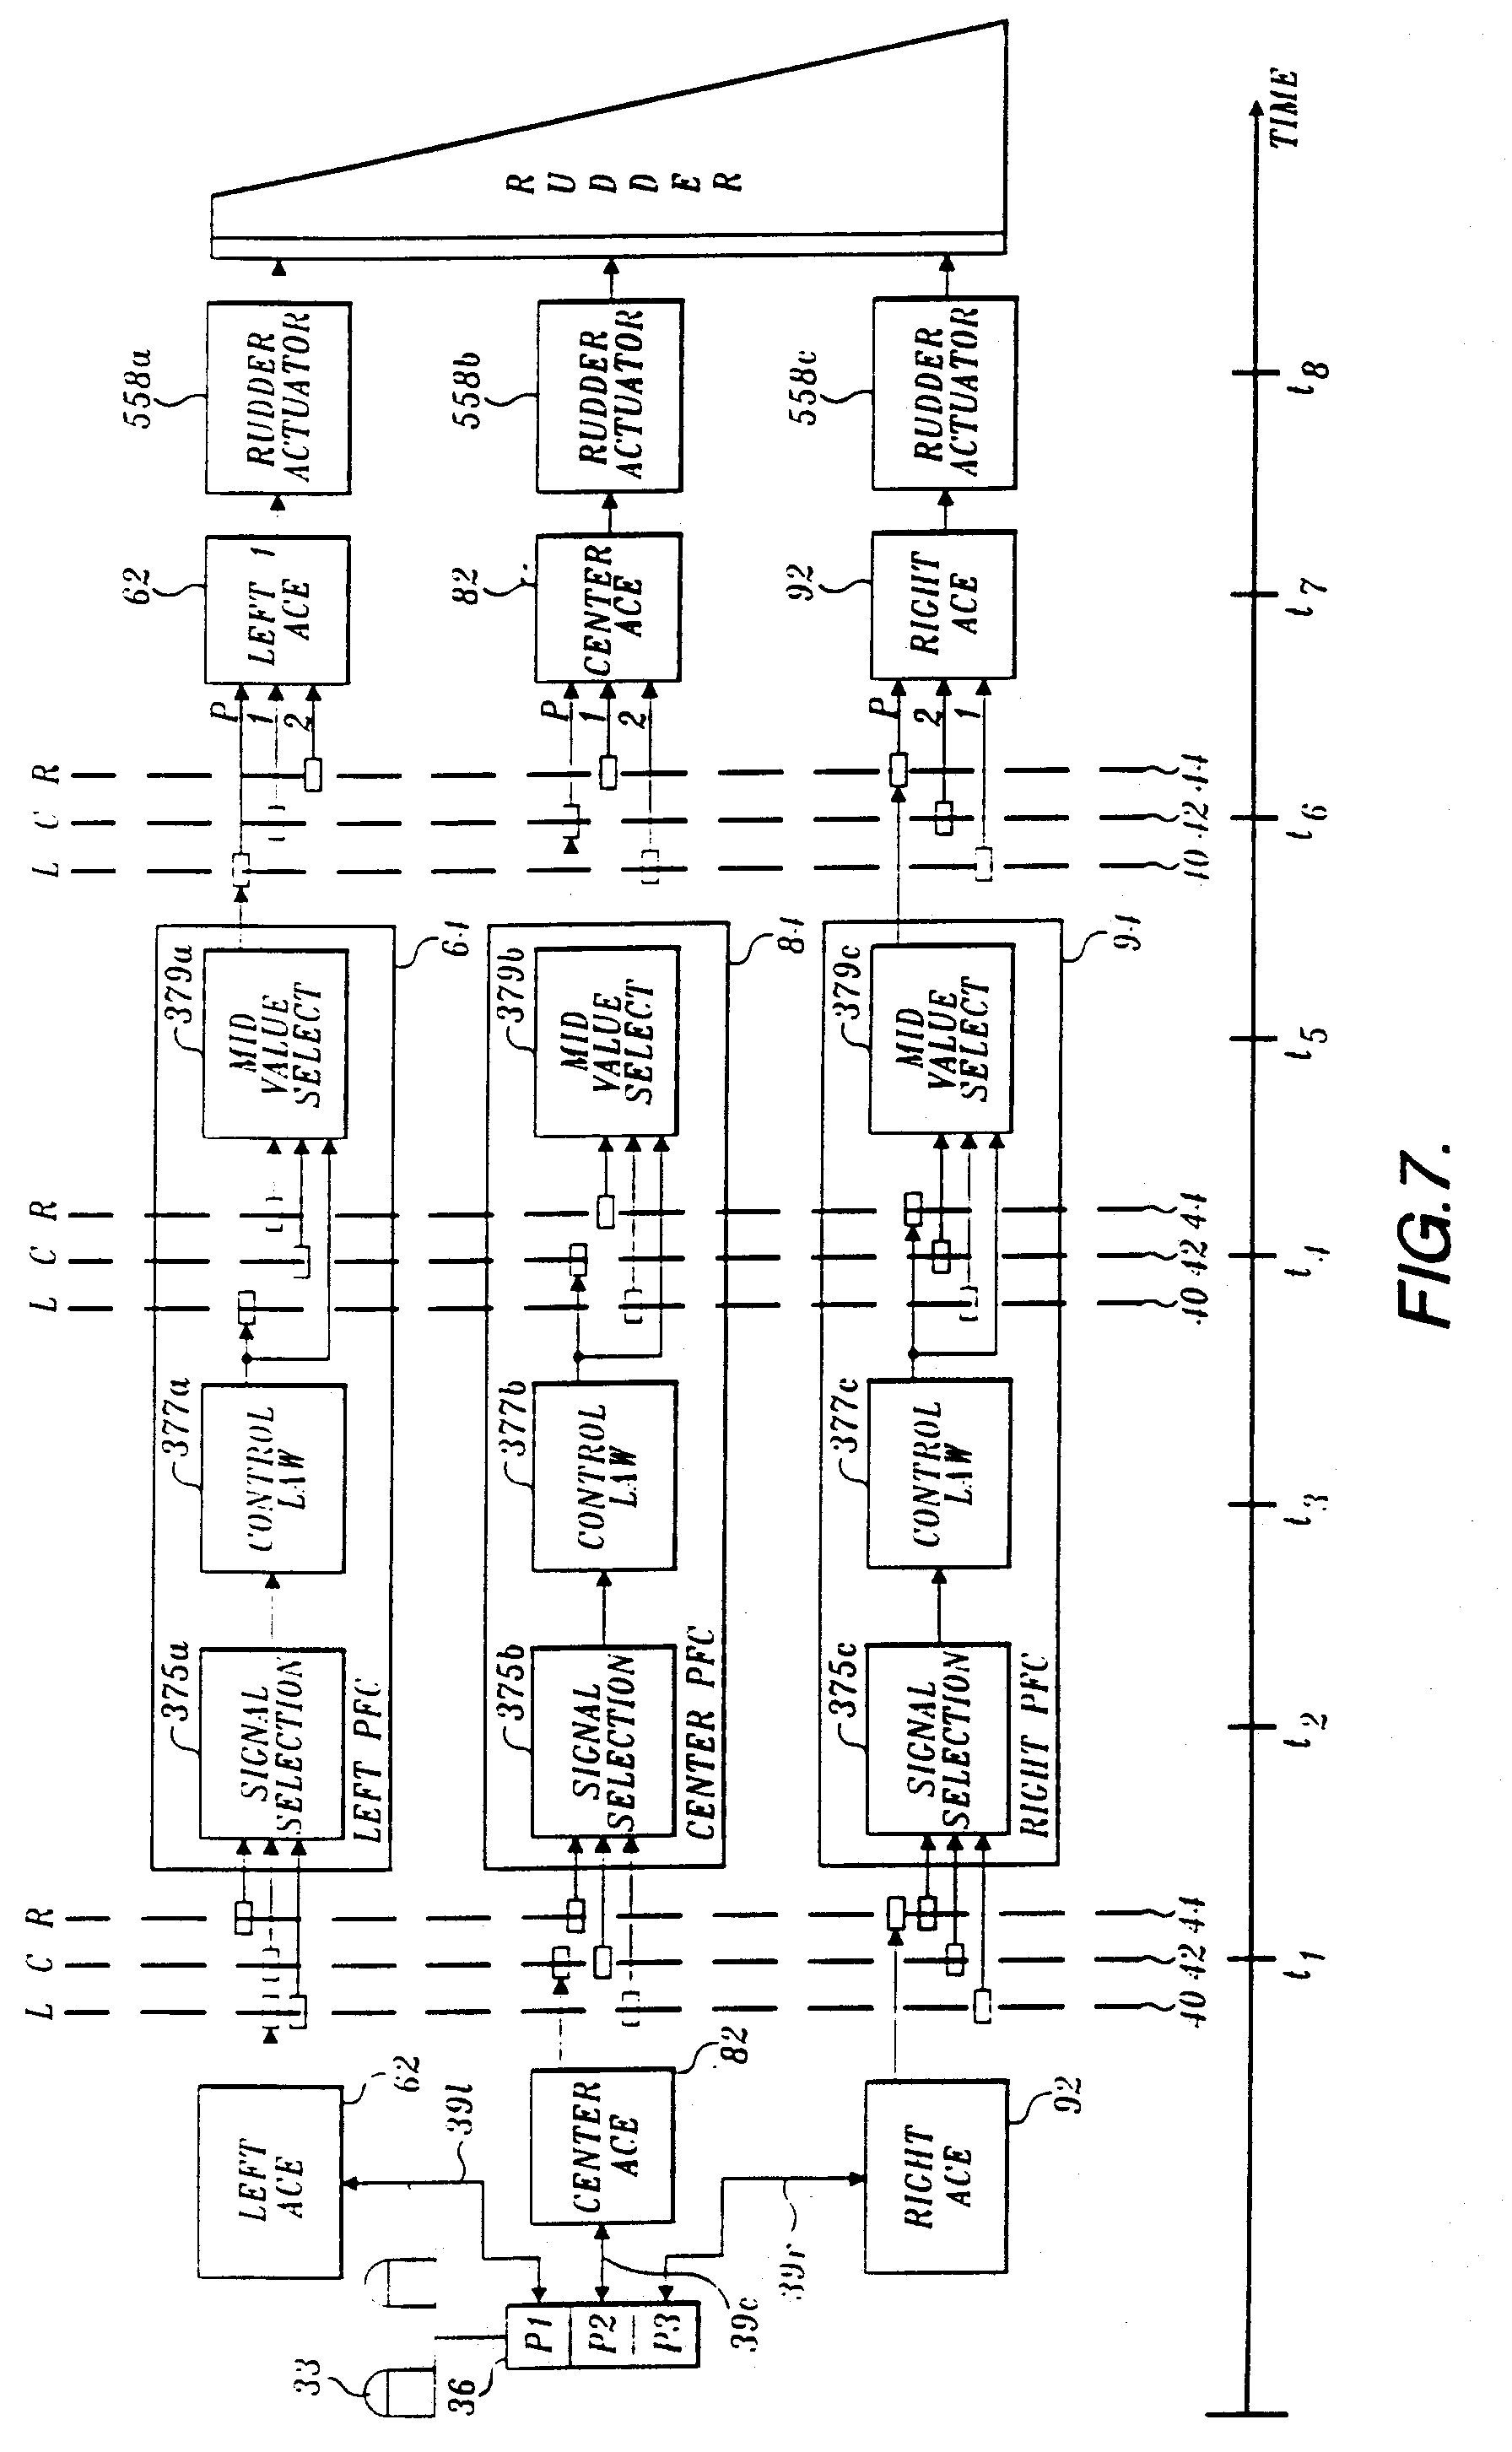 Fly By Wire Component Diagram 29 Wiring Images Equinox Fuse Box Location Imgf0007 Patent Ep0573106a1 Multiaxis Redundant Primary System At Cita